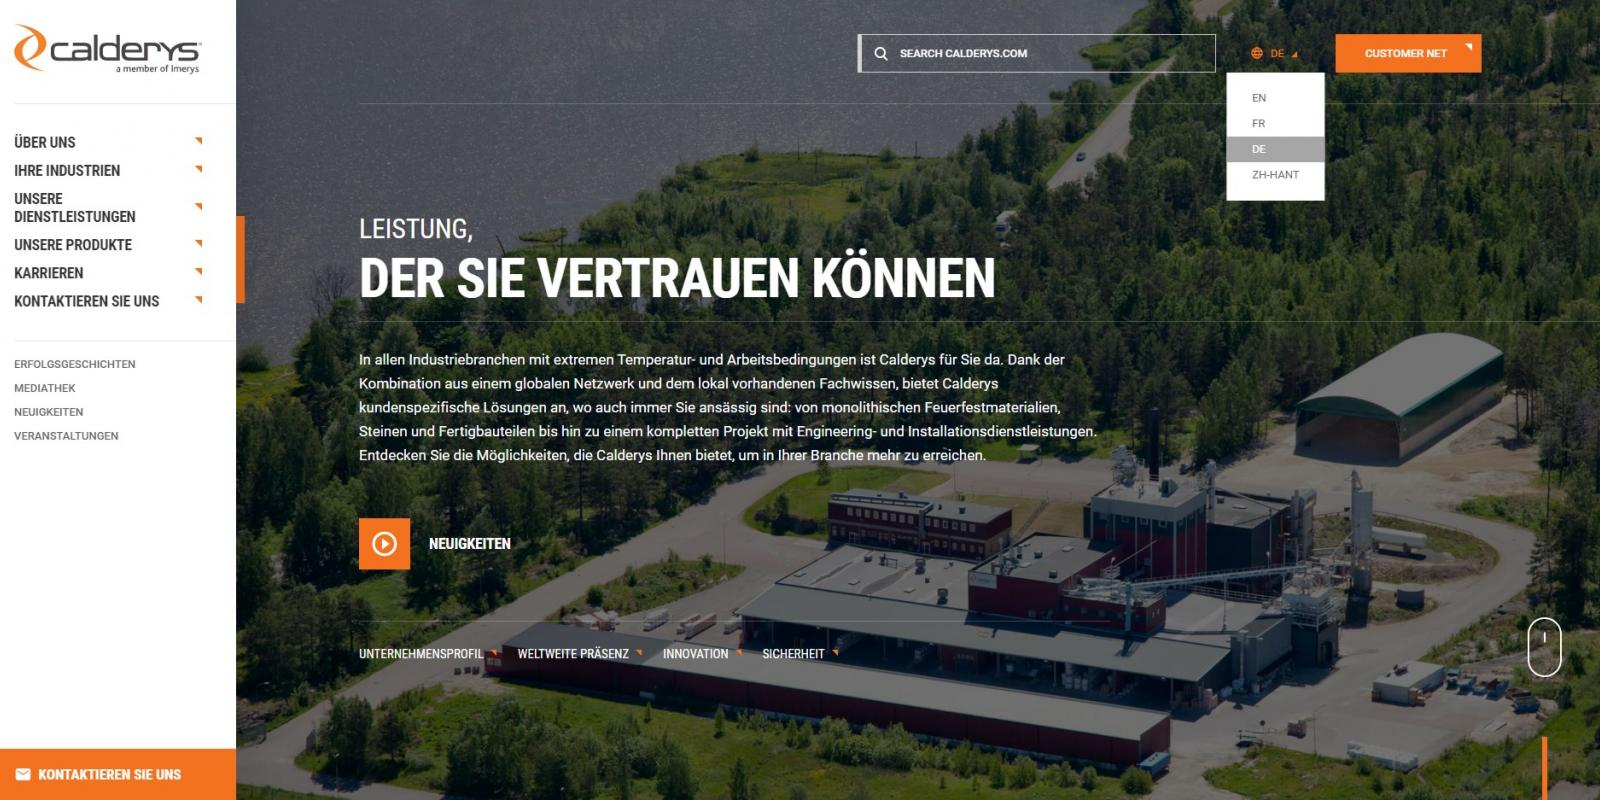 Calderys website now available in German language